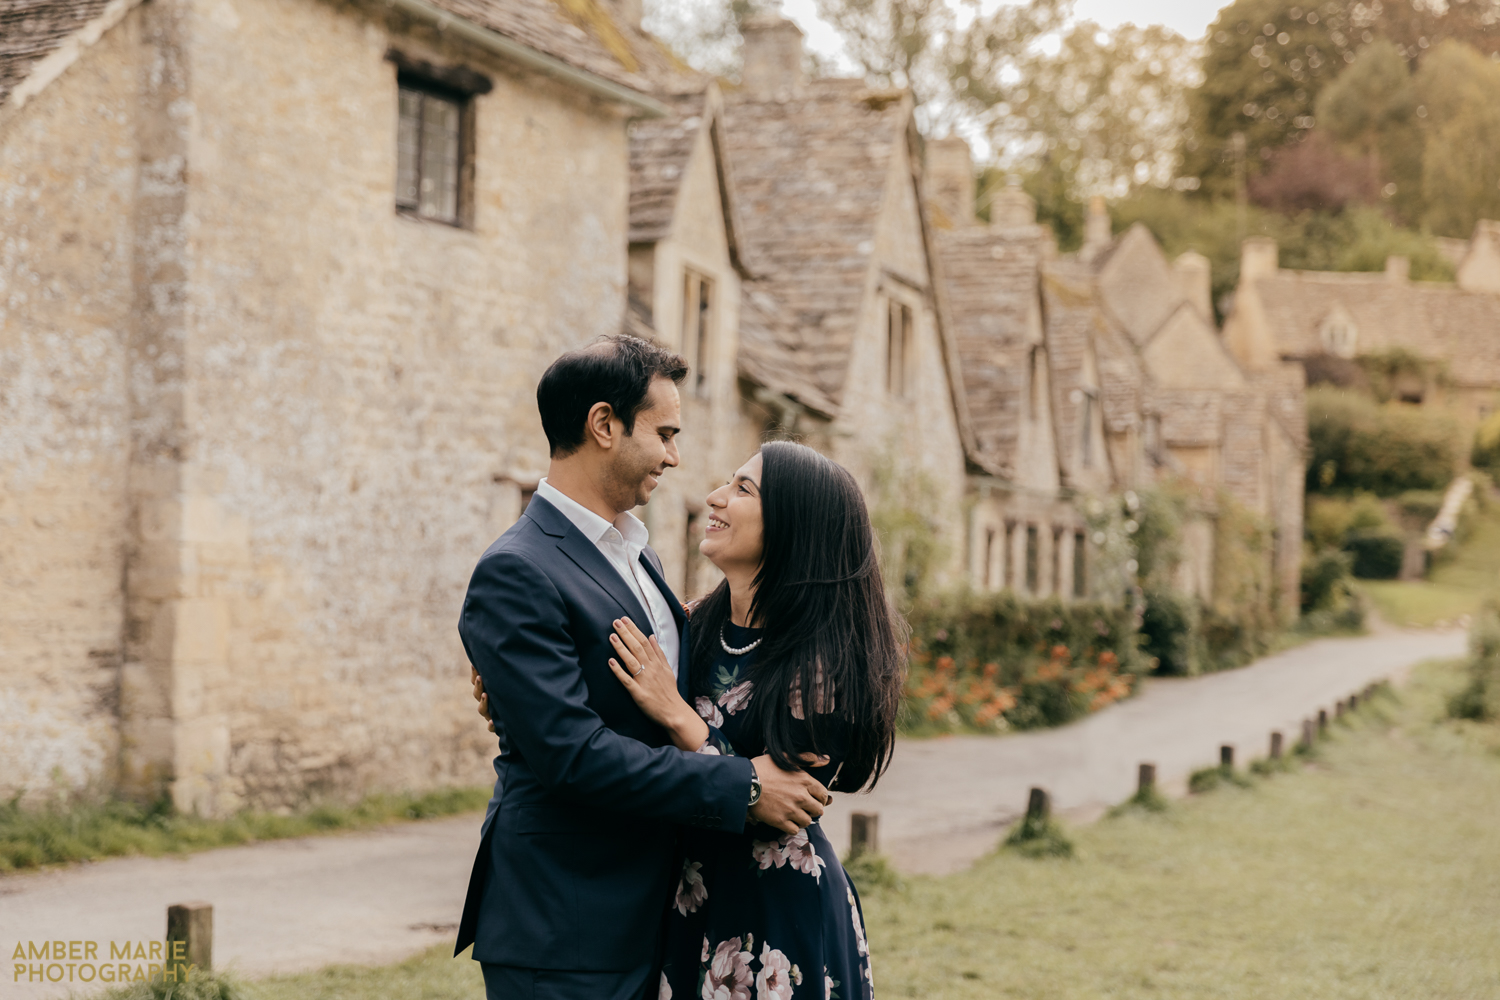 A relaxed portrait of a bride and groom during golden hour. Hugging in front of a row of quaint cottages in The Cotswolds.